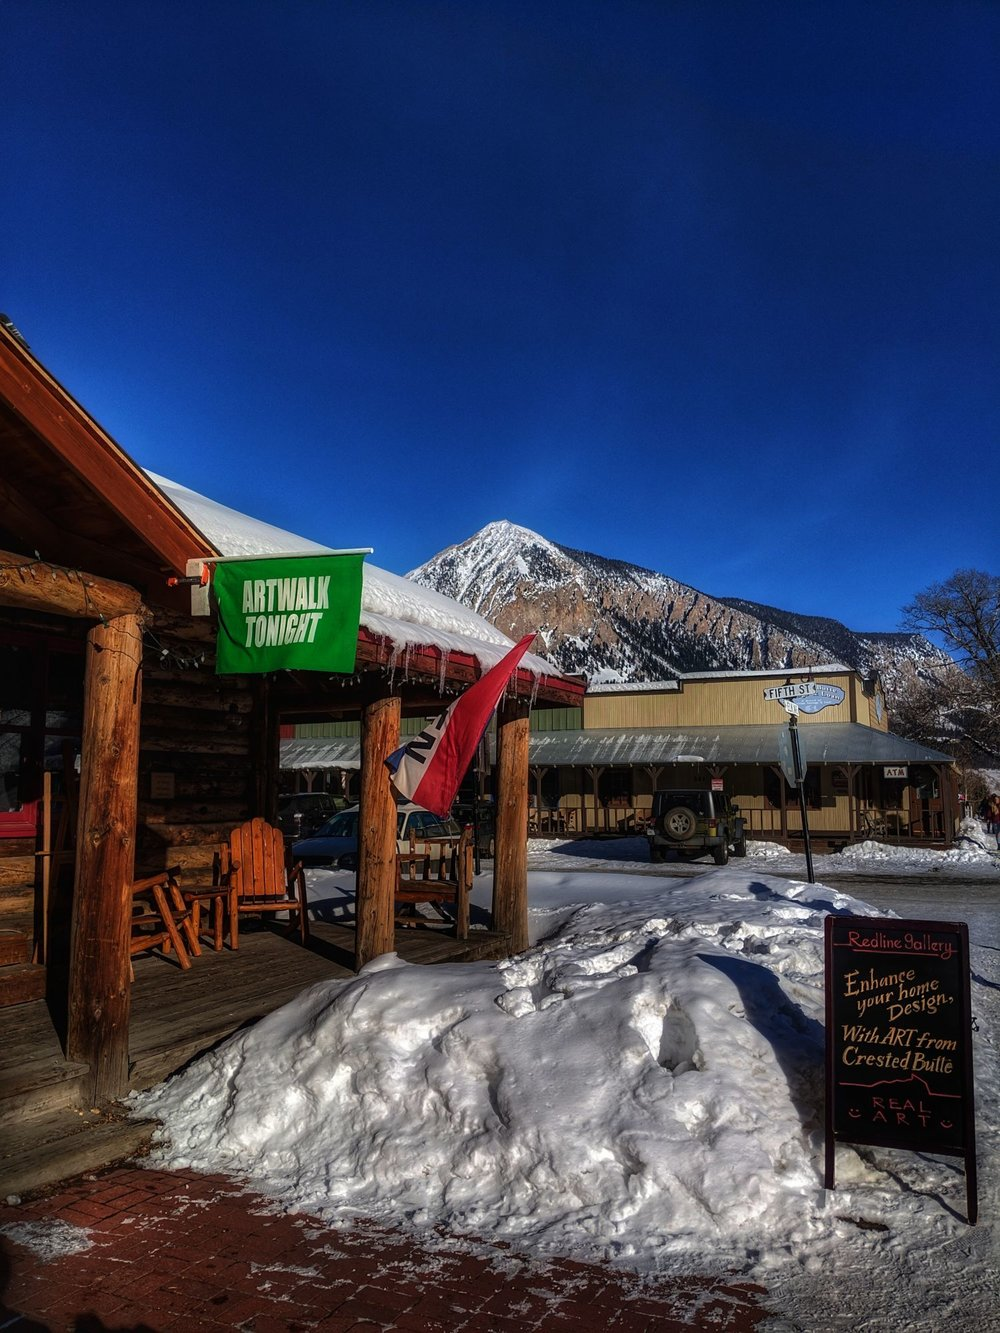 Free Art Walks monthly in Crested Butte, CO